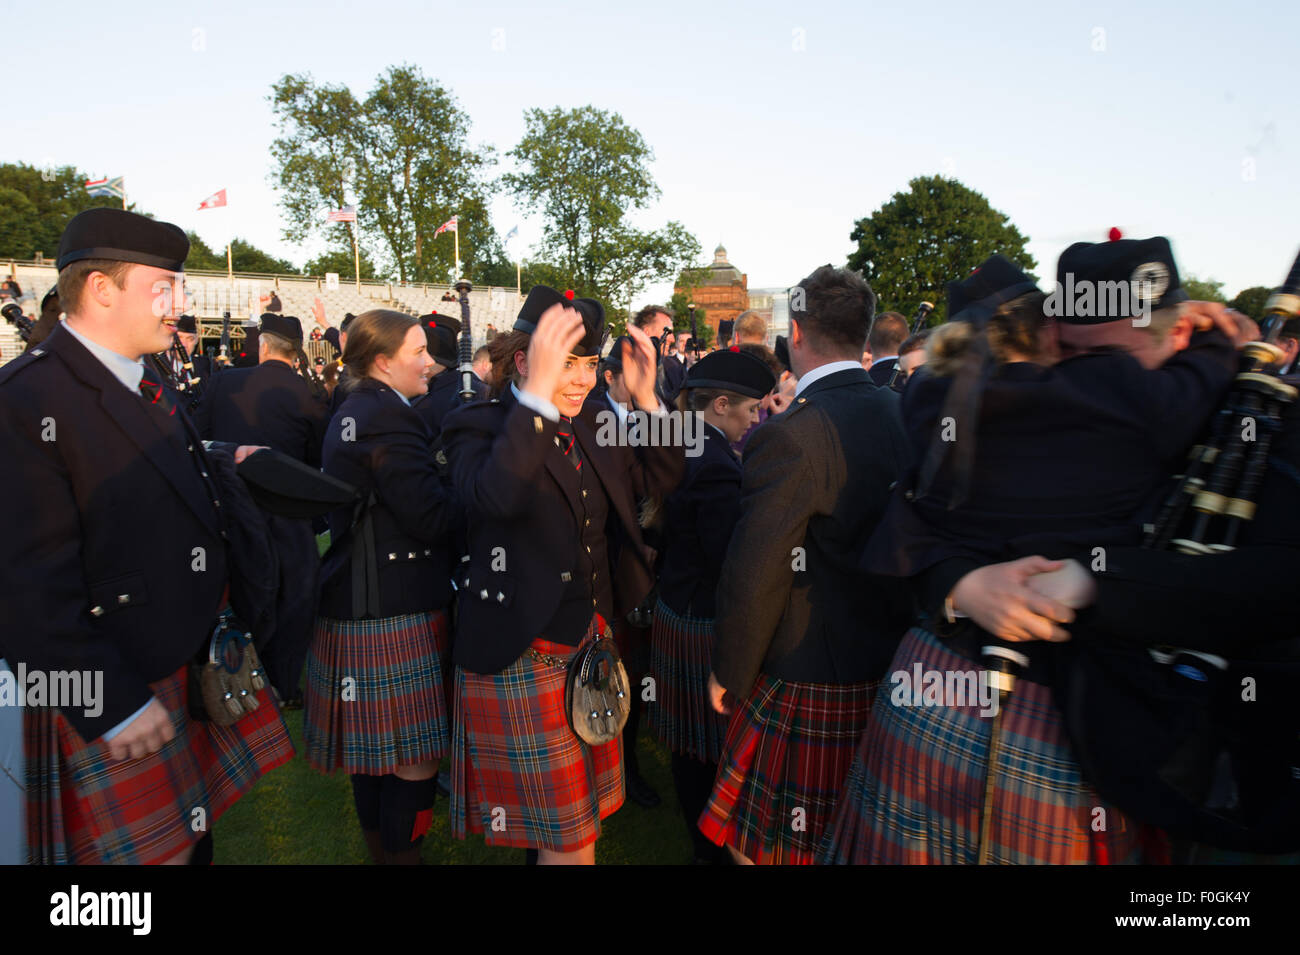 Glasgow, Scotland, 15th of August 2015.The World Pipe Band Championships held in Glasgow Green brings pipe bands - Stock Image